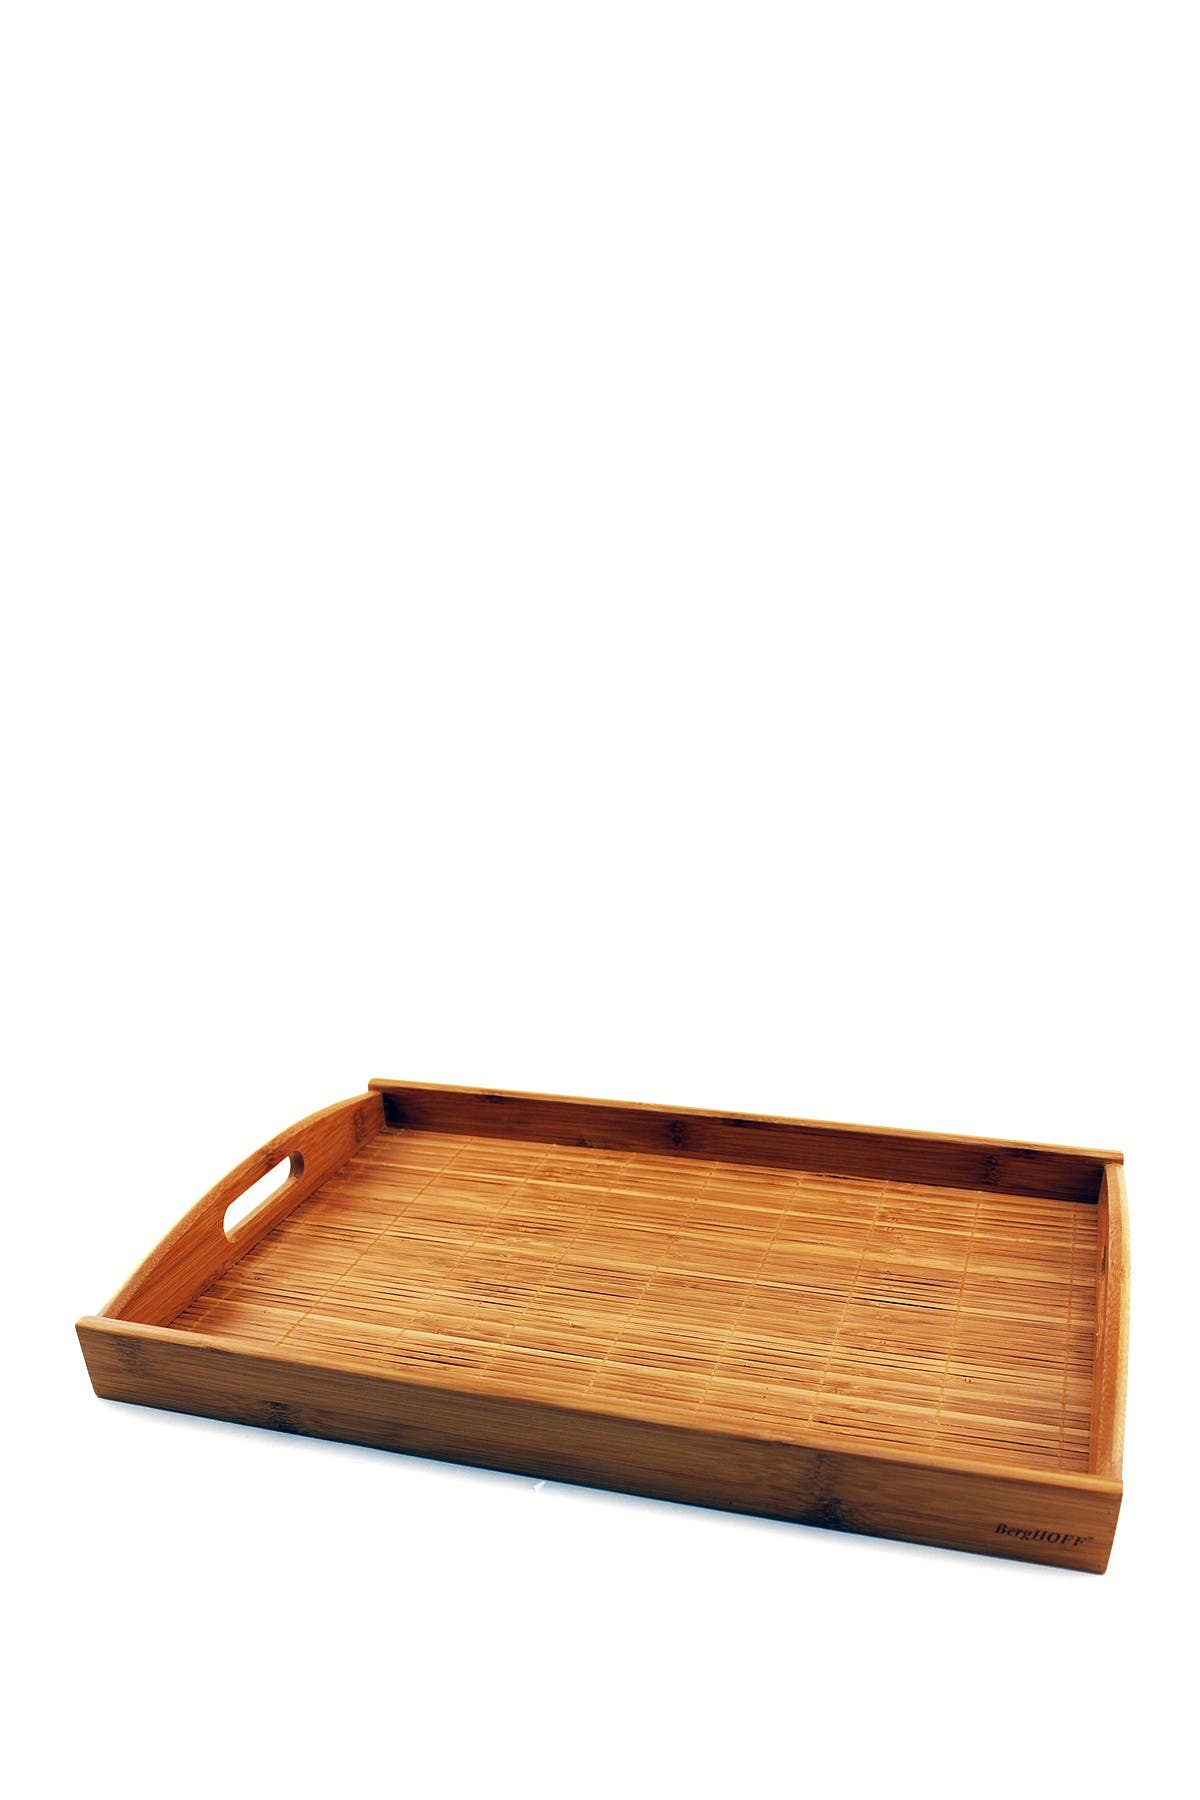 Image of BergHOFF Bamboo Arched Tray